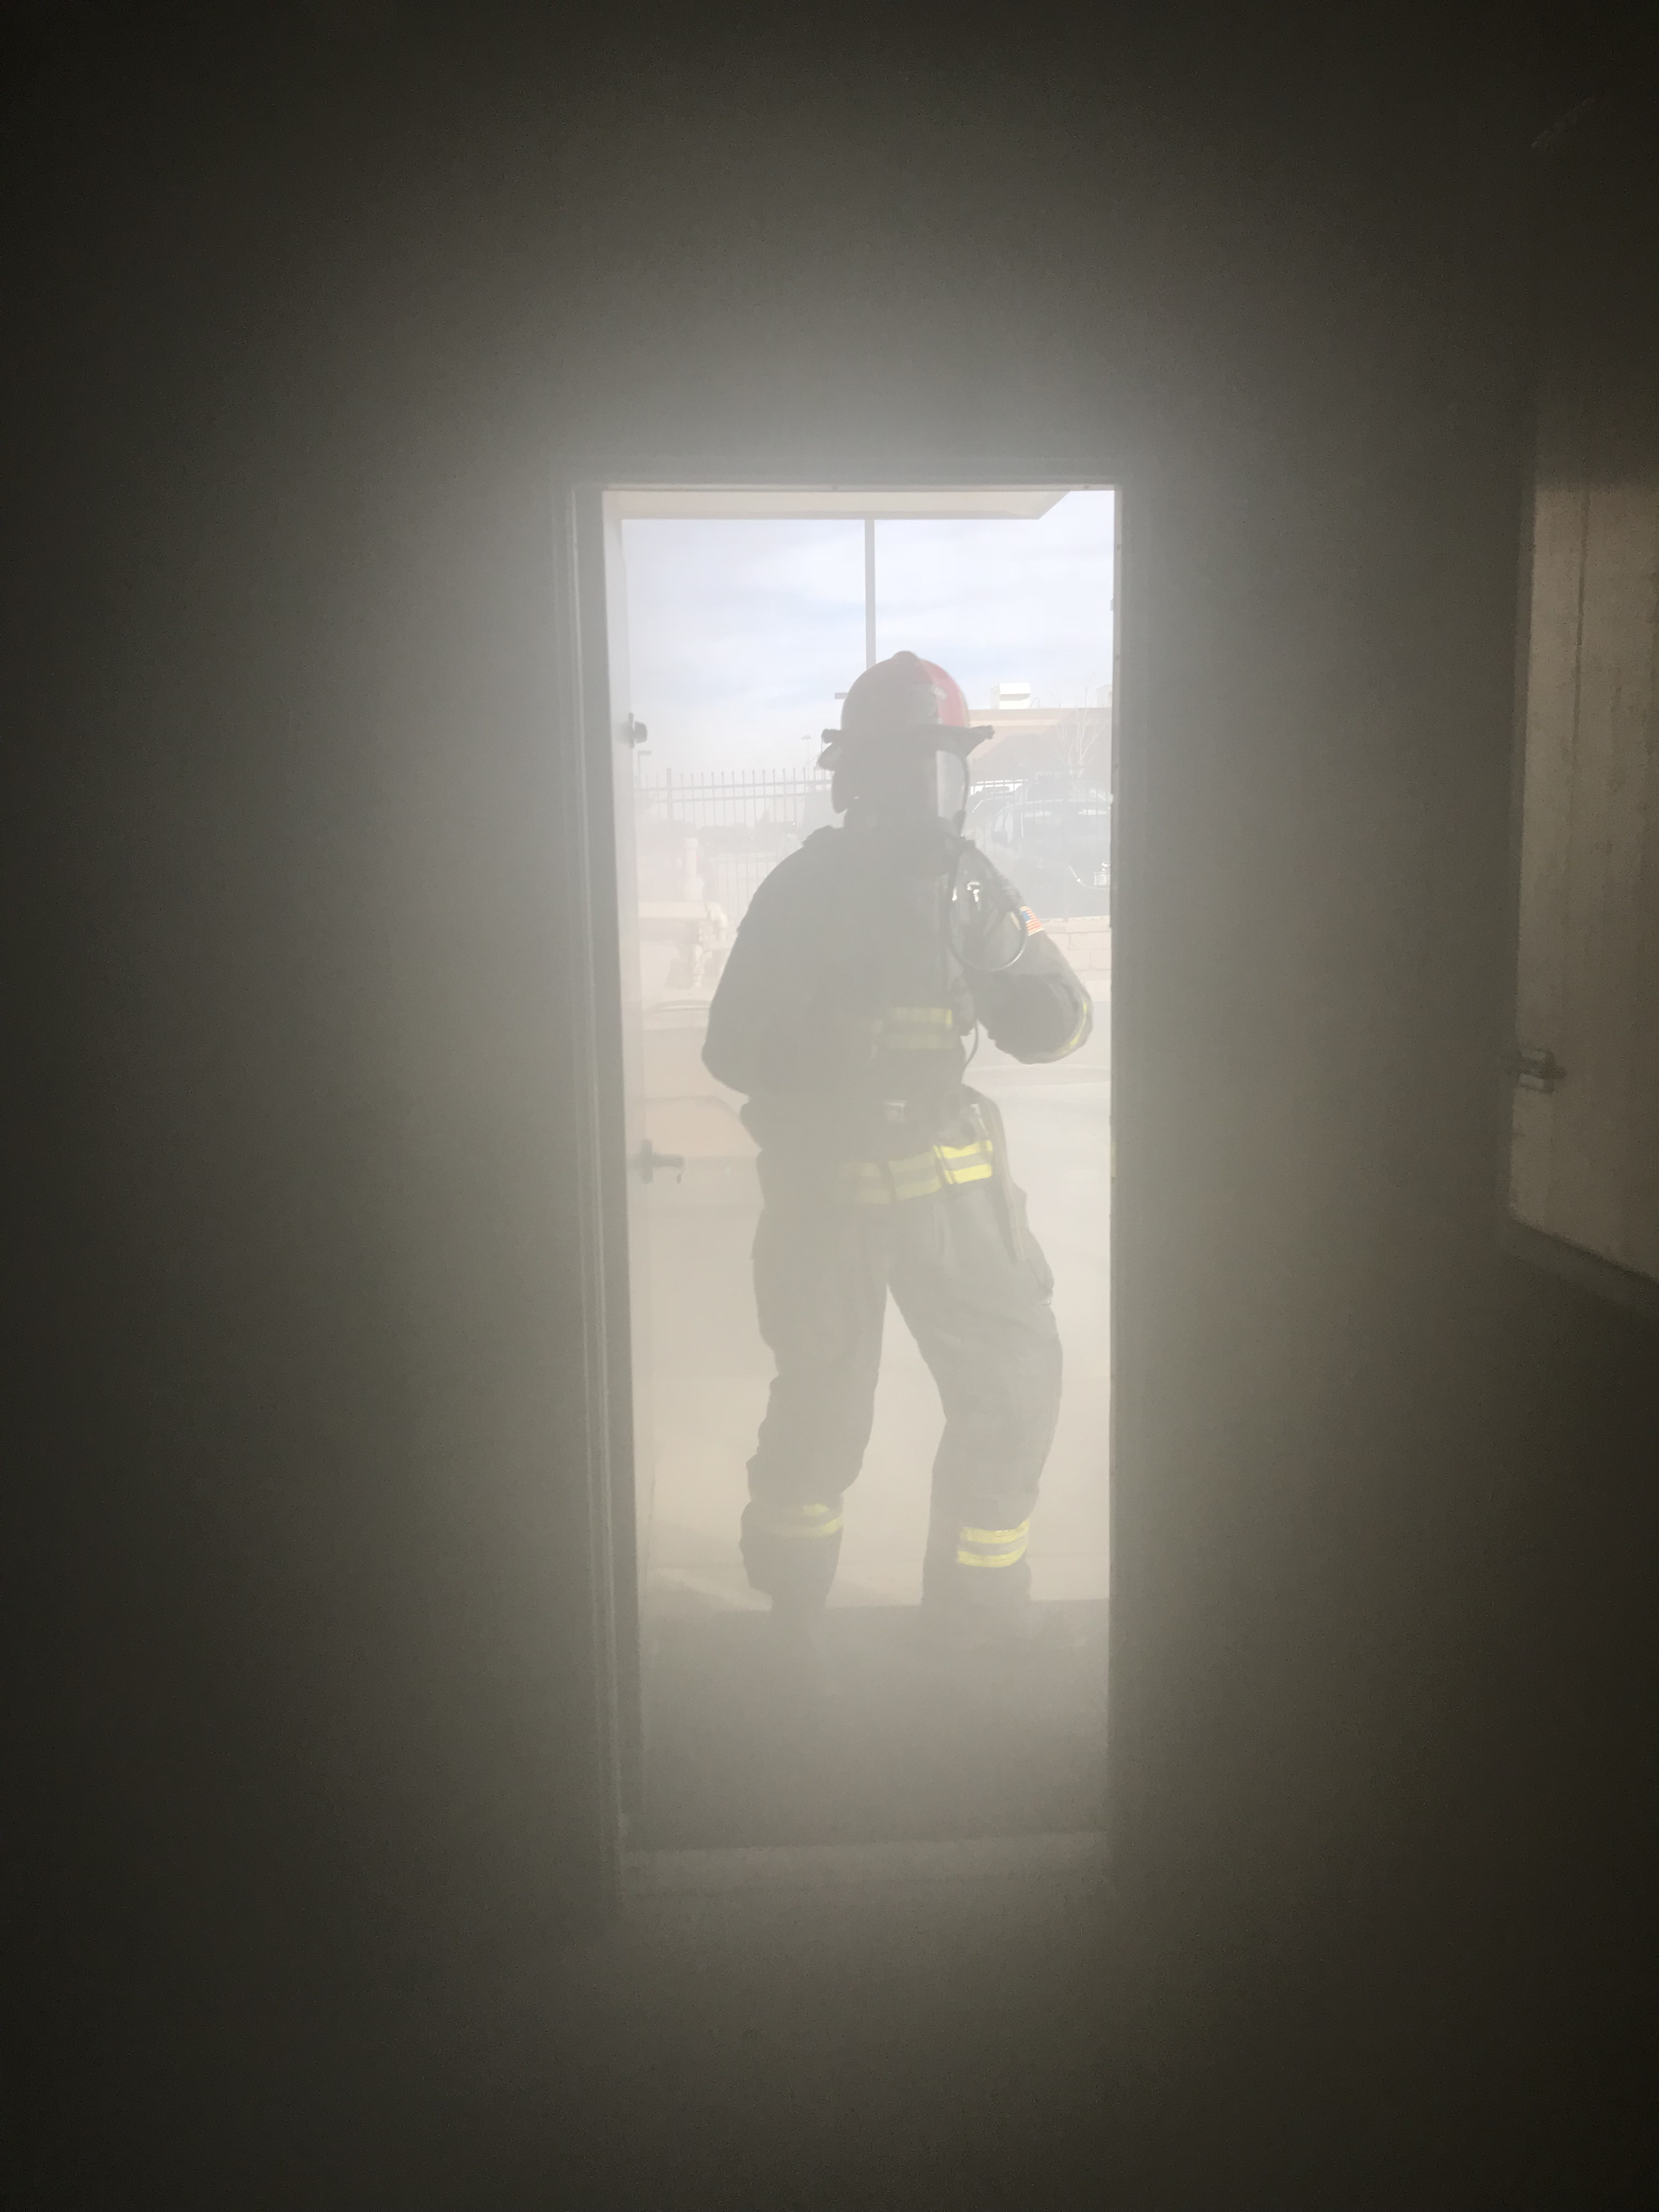 Firefighter standing outside in doorway is almost completely obscured by smoke.